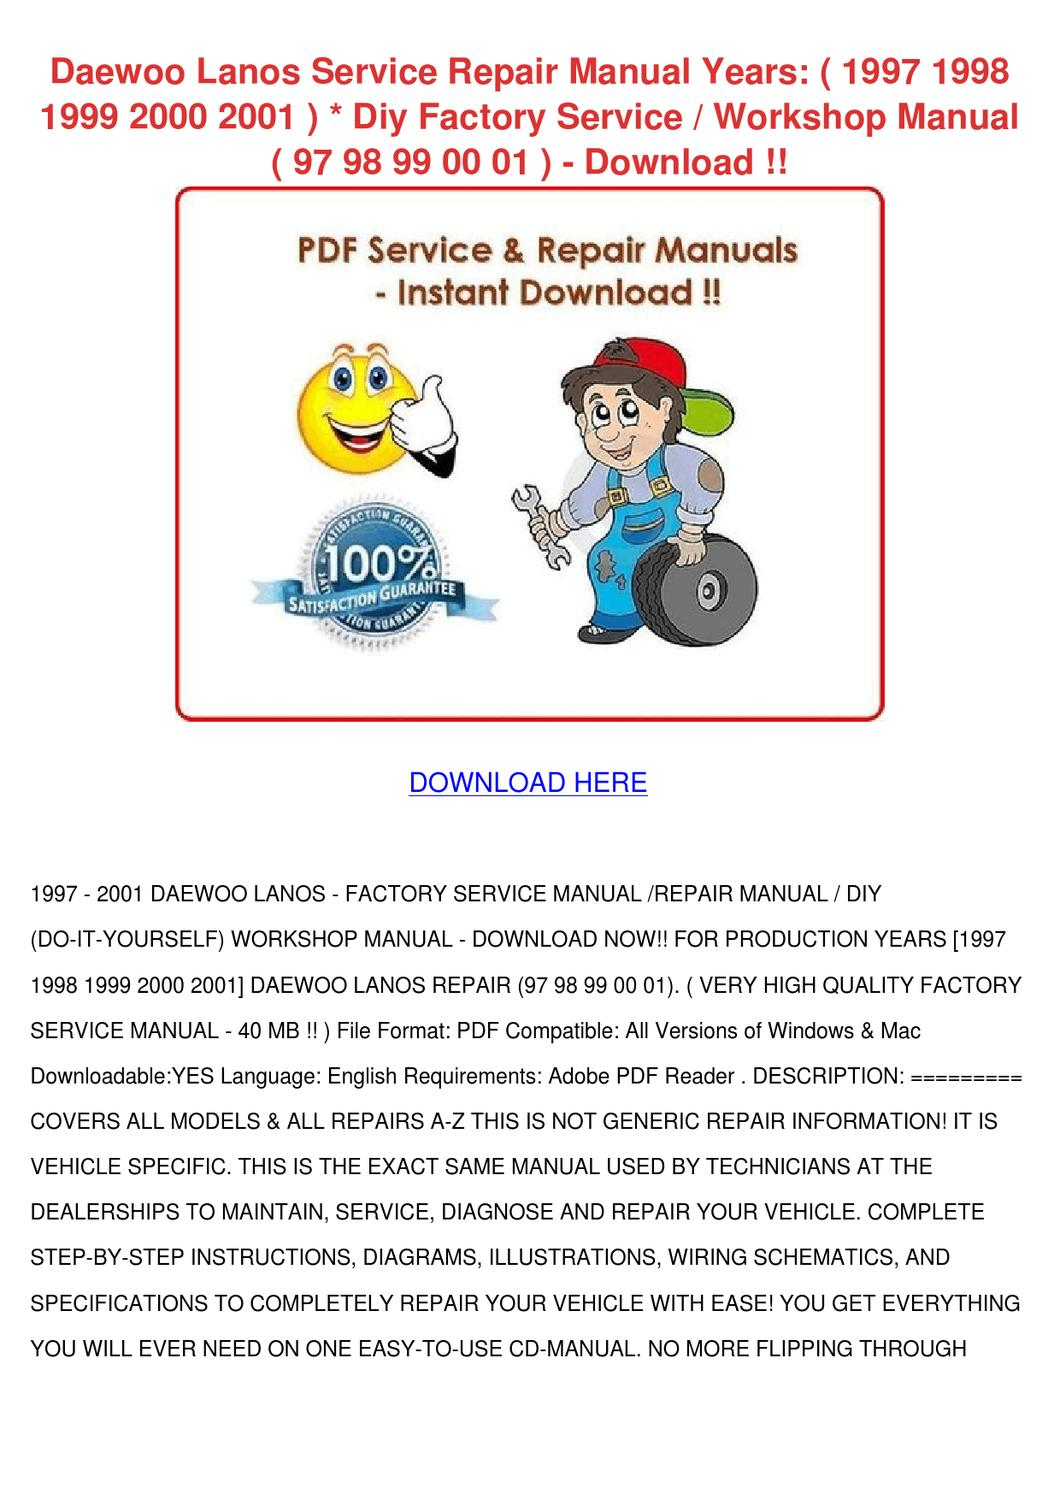 2000 daewoo lanos repair manual pdf